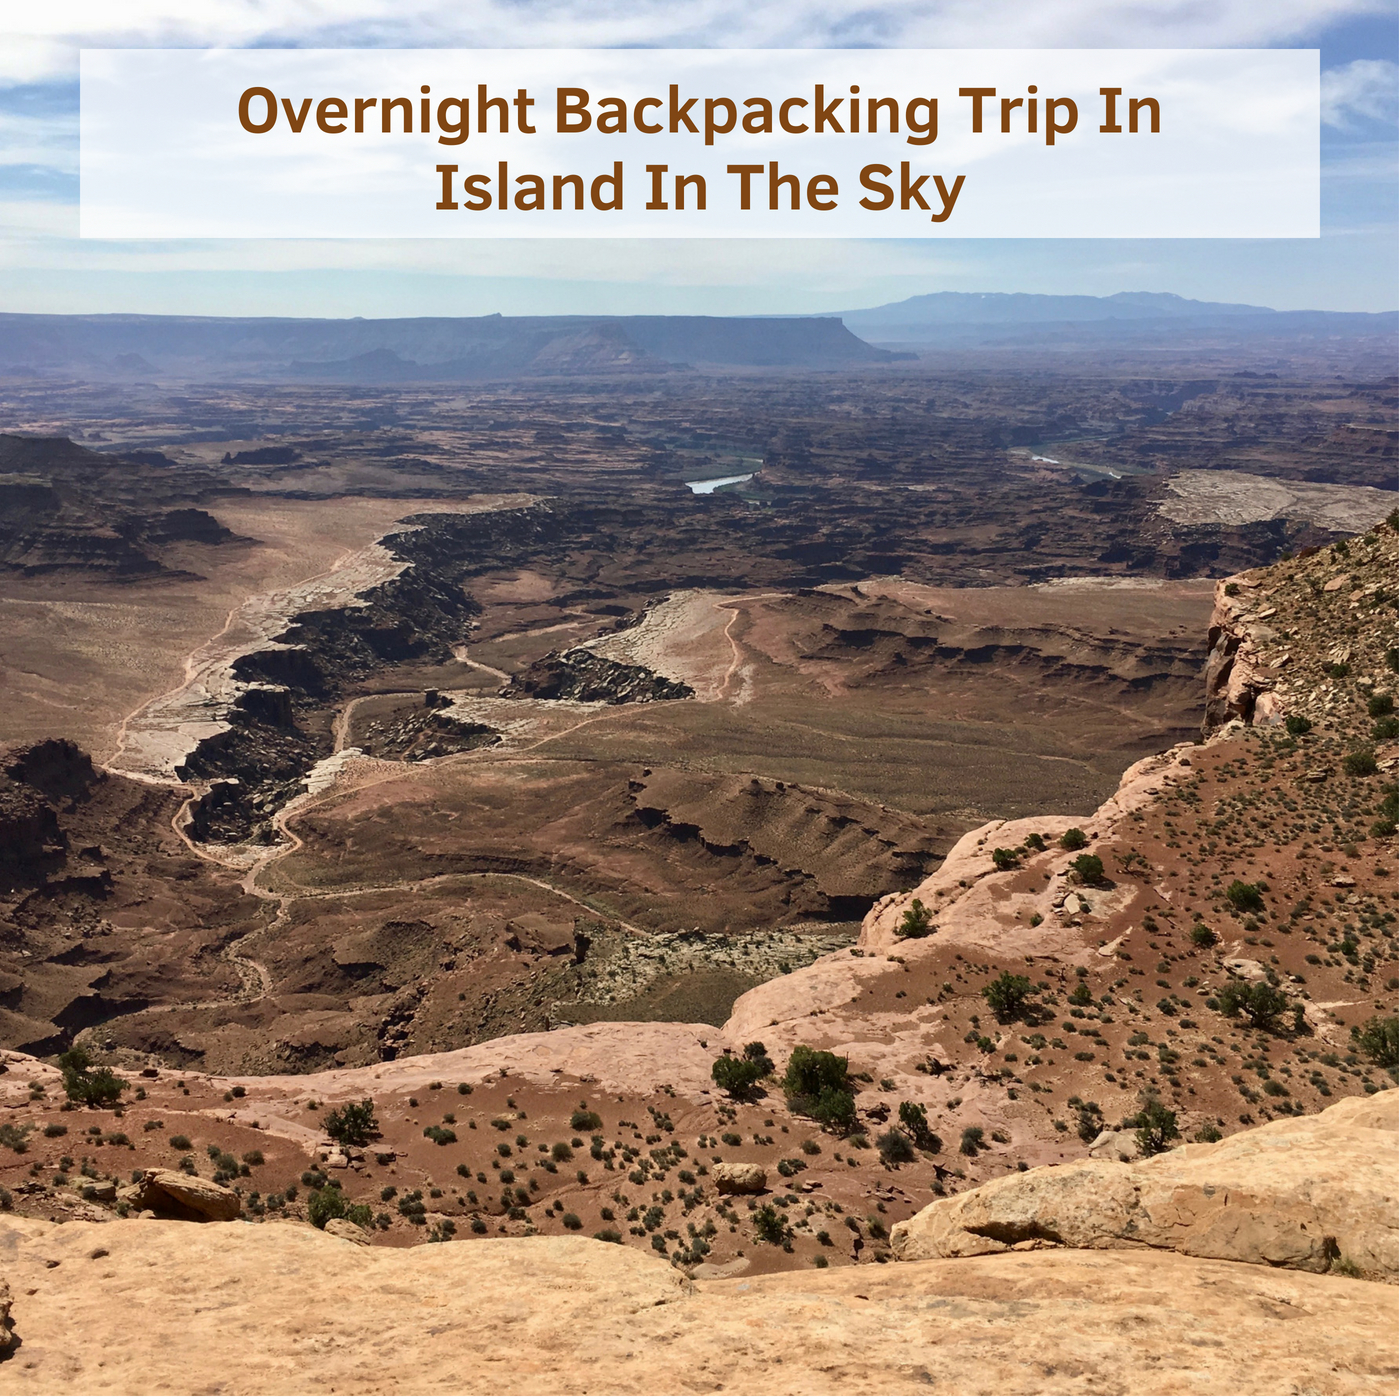 Overnight Backpacking Trip In Island In The Sky